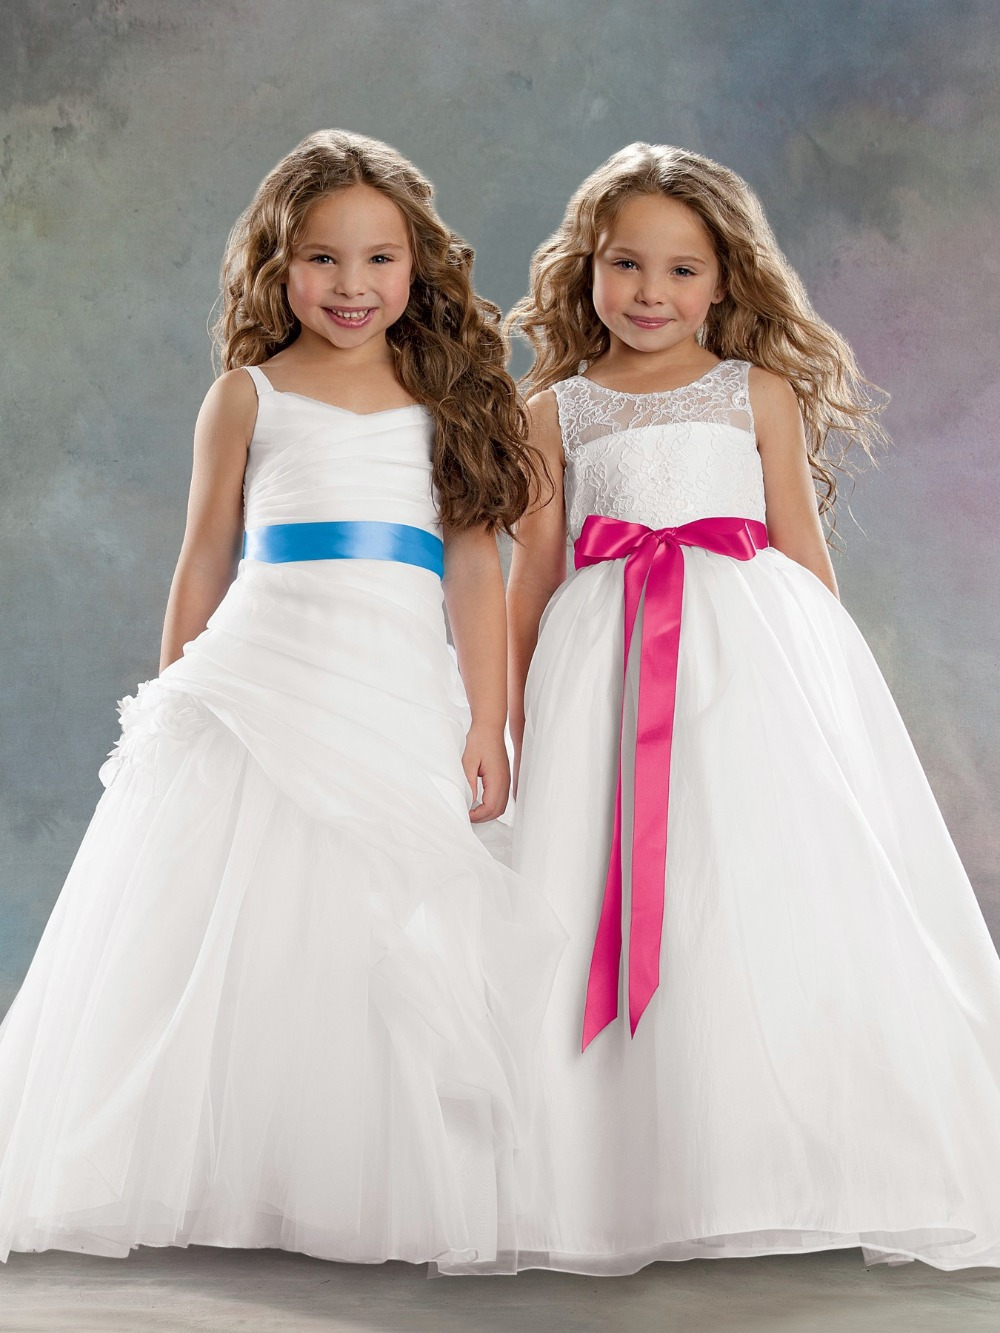 Flower Girl Dress Patterns - Dresses 2017